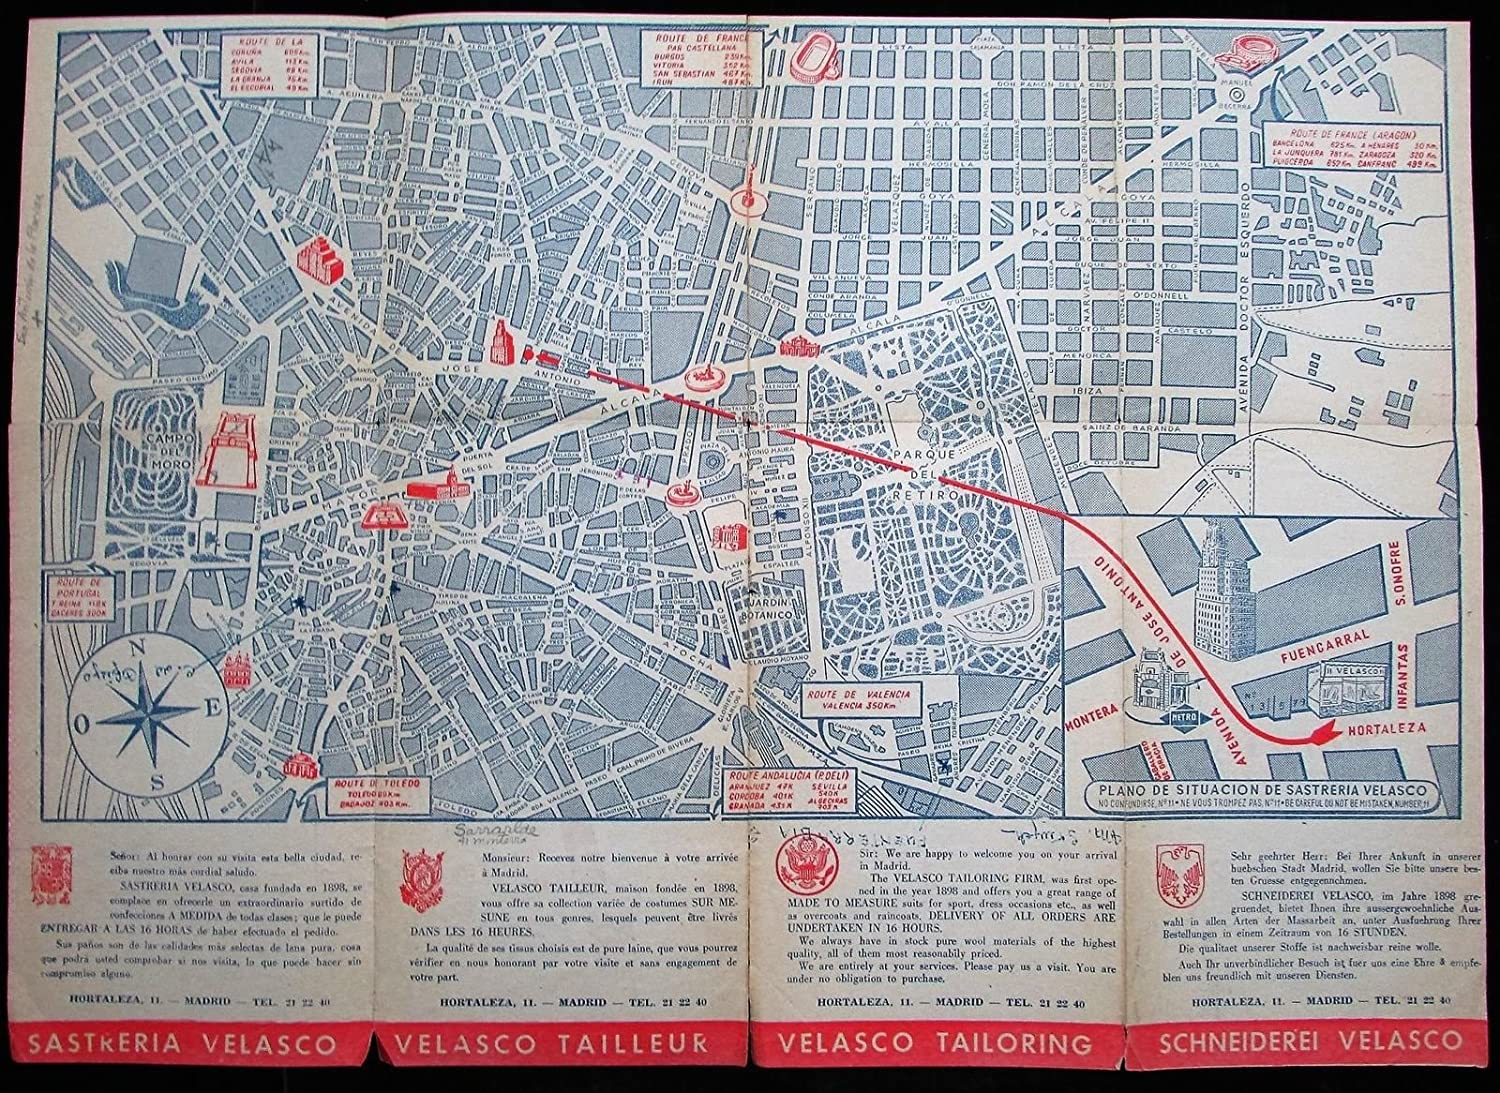 Amazon.com: Madrid Spain city map plan c.1930-50s lot of 3 large folding ads views cartoon: Entertainment Collectibles